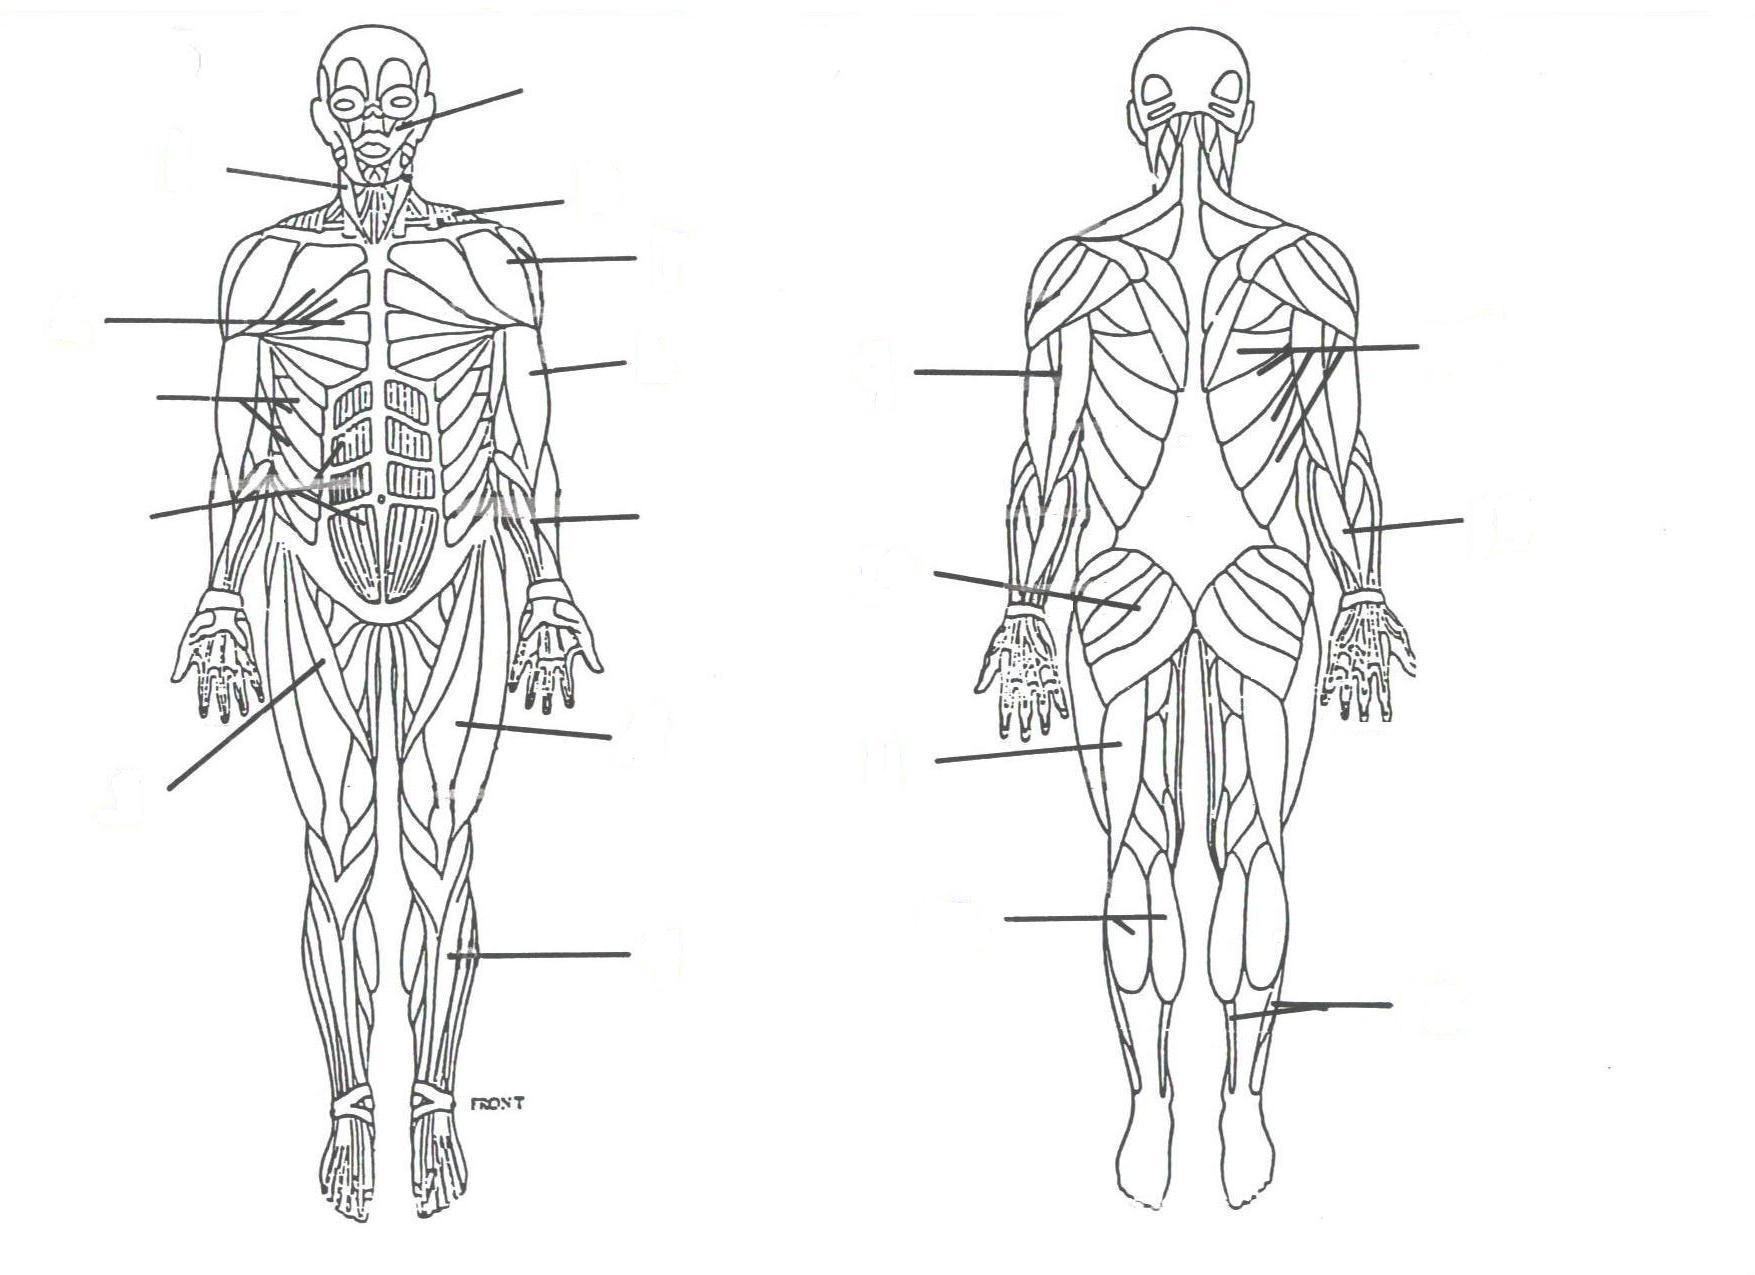 muscular system diagram labeled for kids muscular system diagram labeled for kids muscular system diagram [ 1755 x 1275 Pixel ]